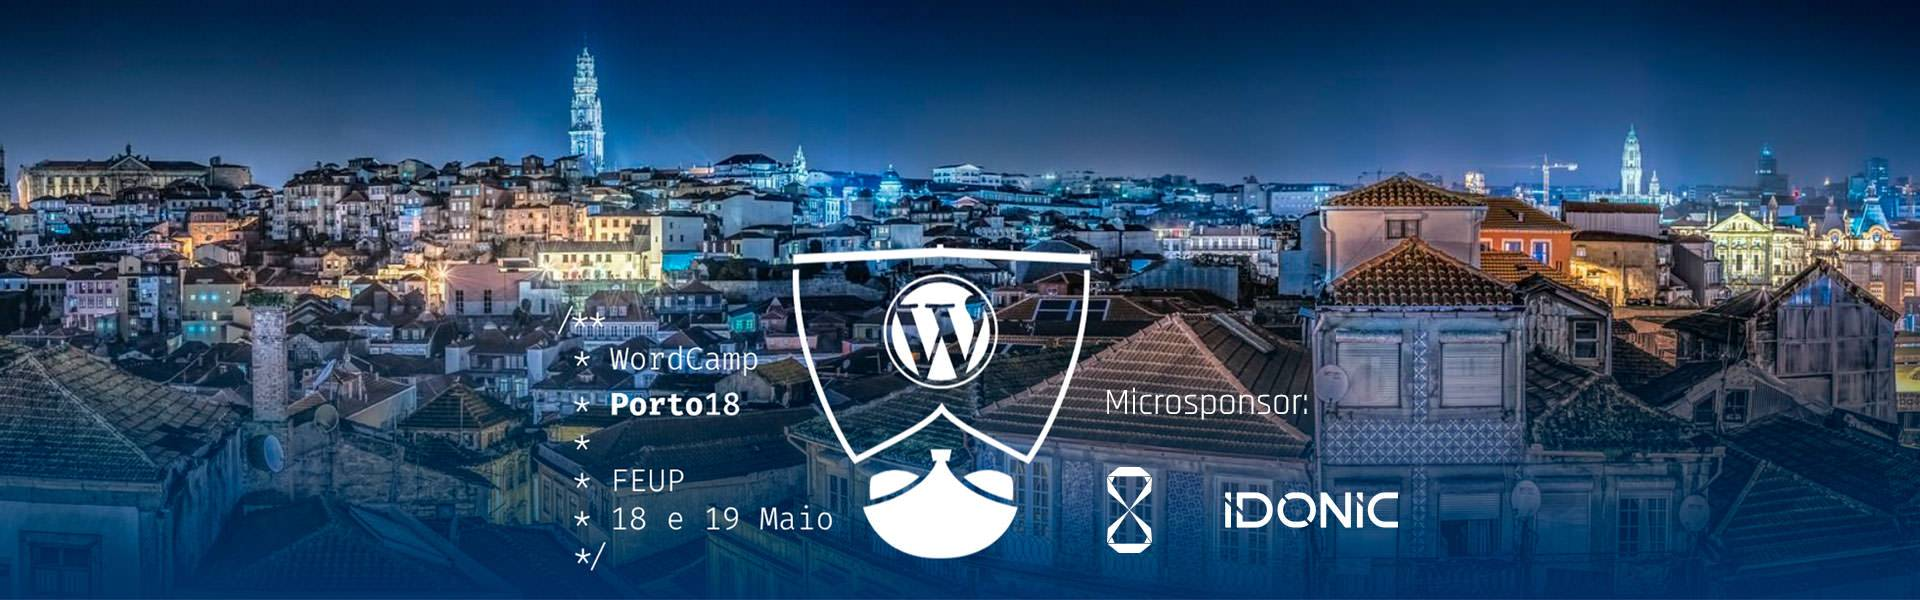 idonic-word-camp-porto-2018, WordCamp 2018